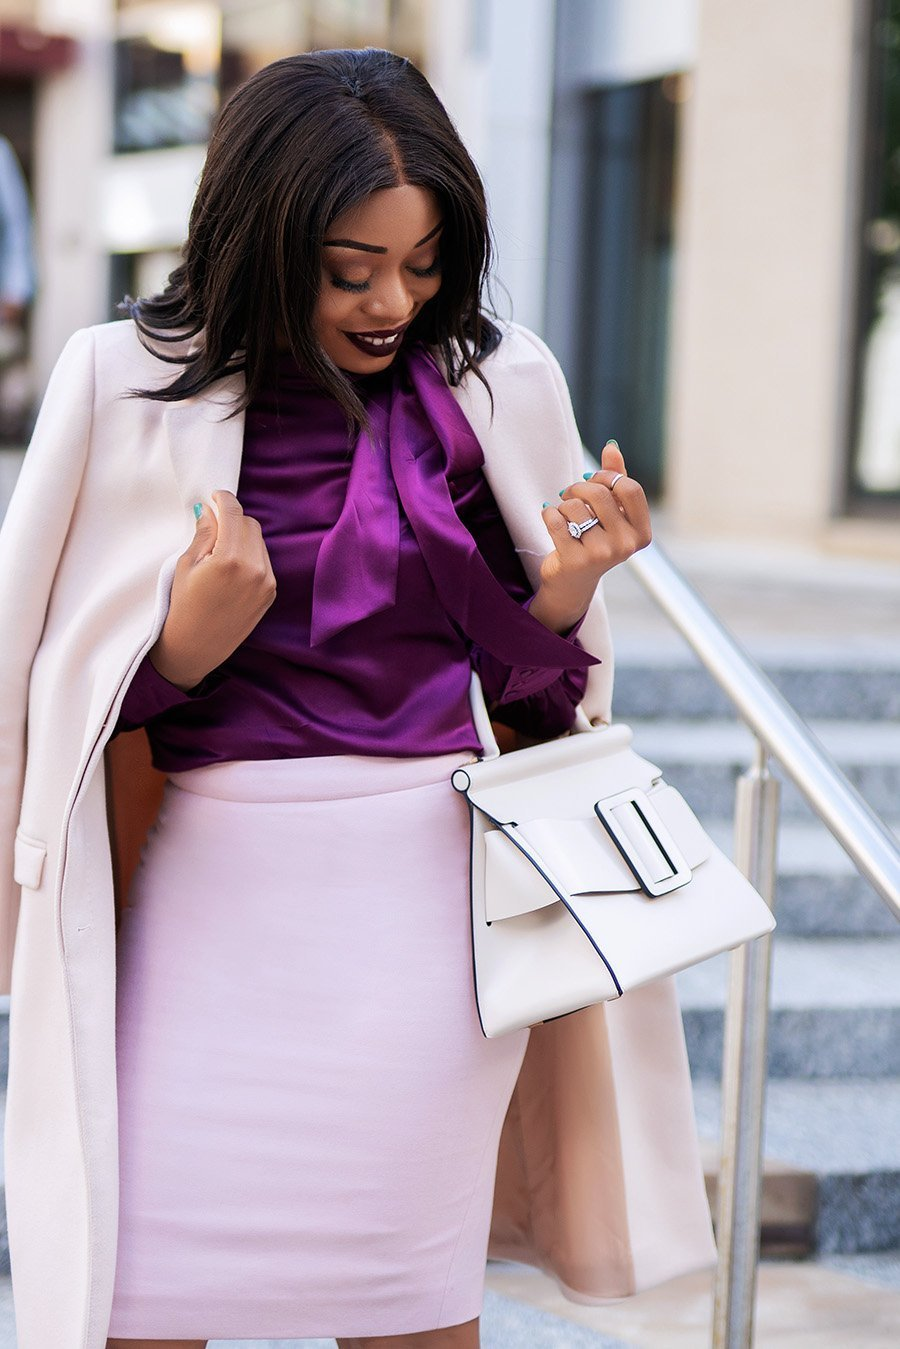 Fashion-blogger-Stella-Eneanya-Adewunmi-of-Jadore-Fashion-wearing-light-pink-and-jewel-tone-color-work-outfit